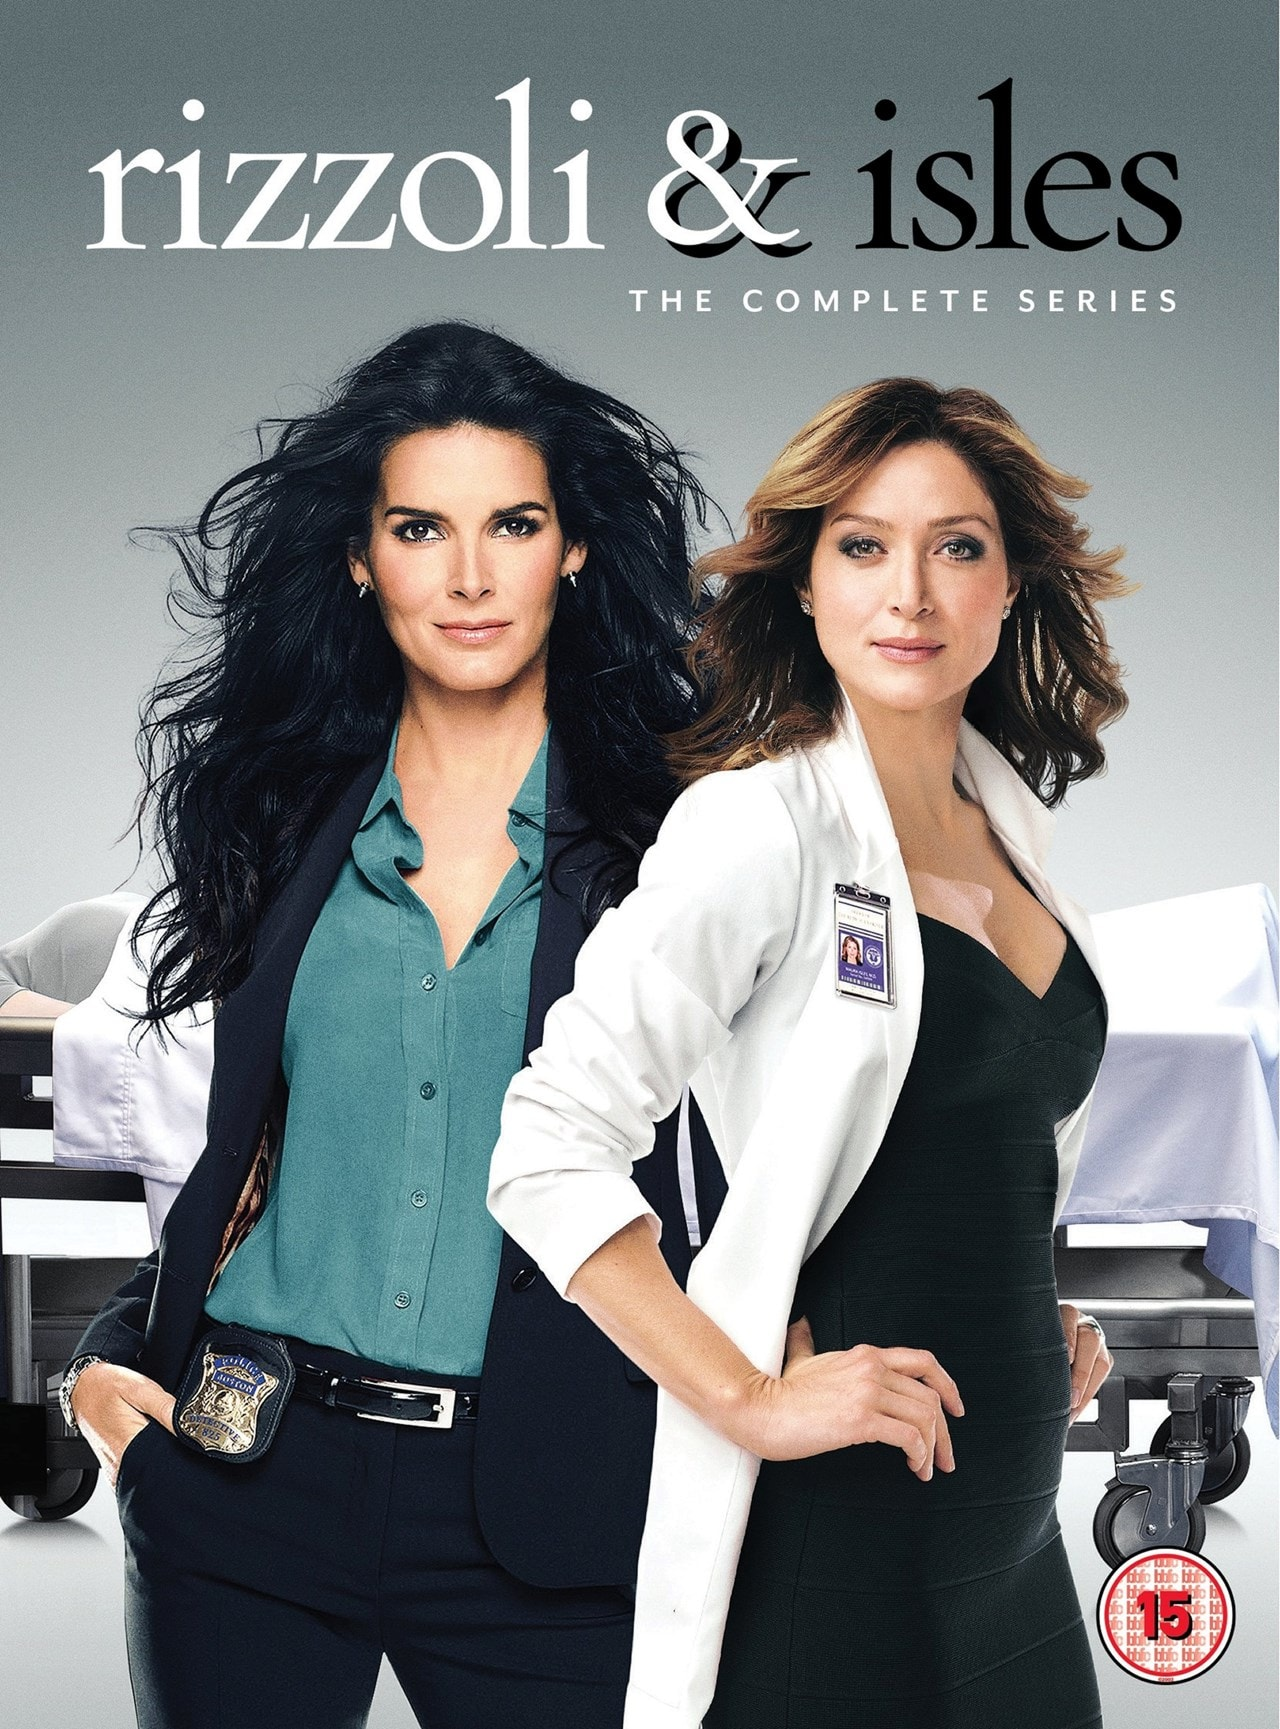 Rizzoli & Isles: The Complete Series - 1